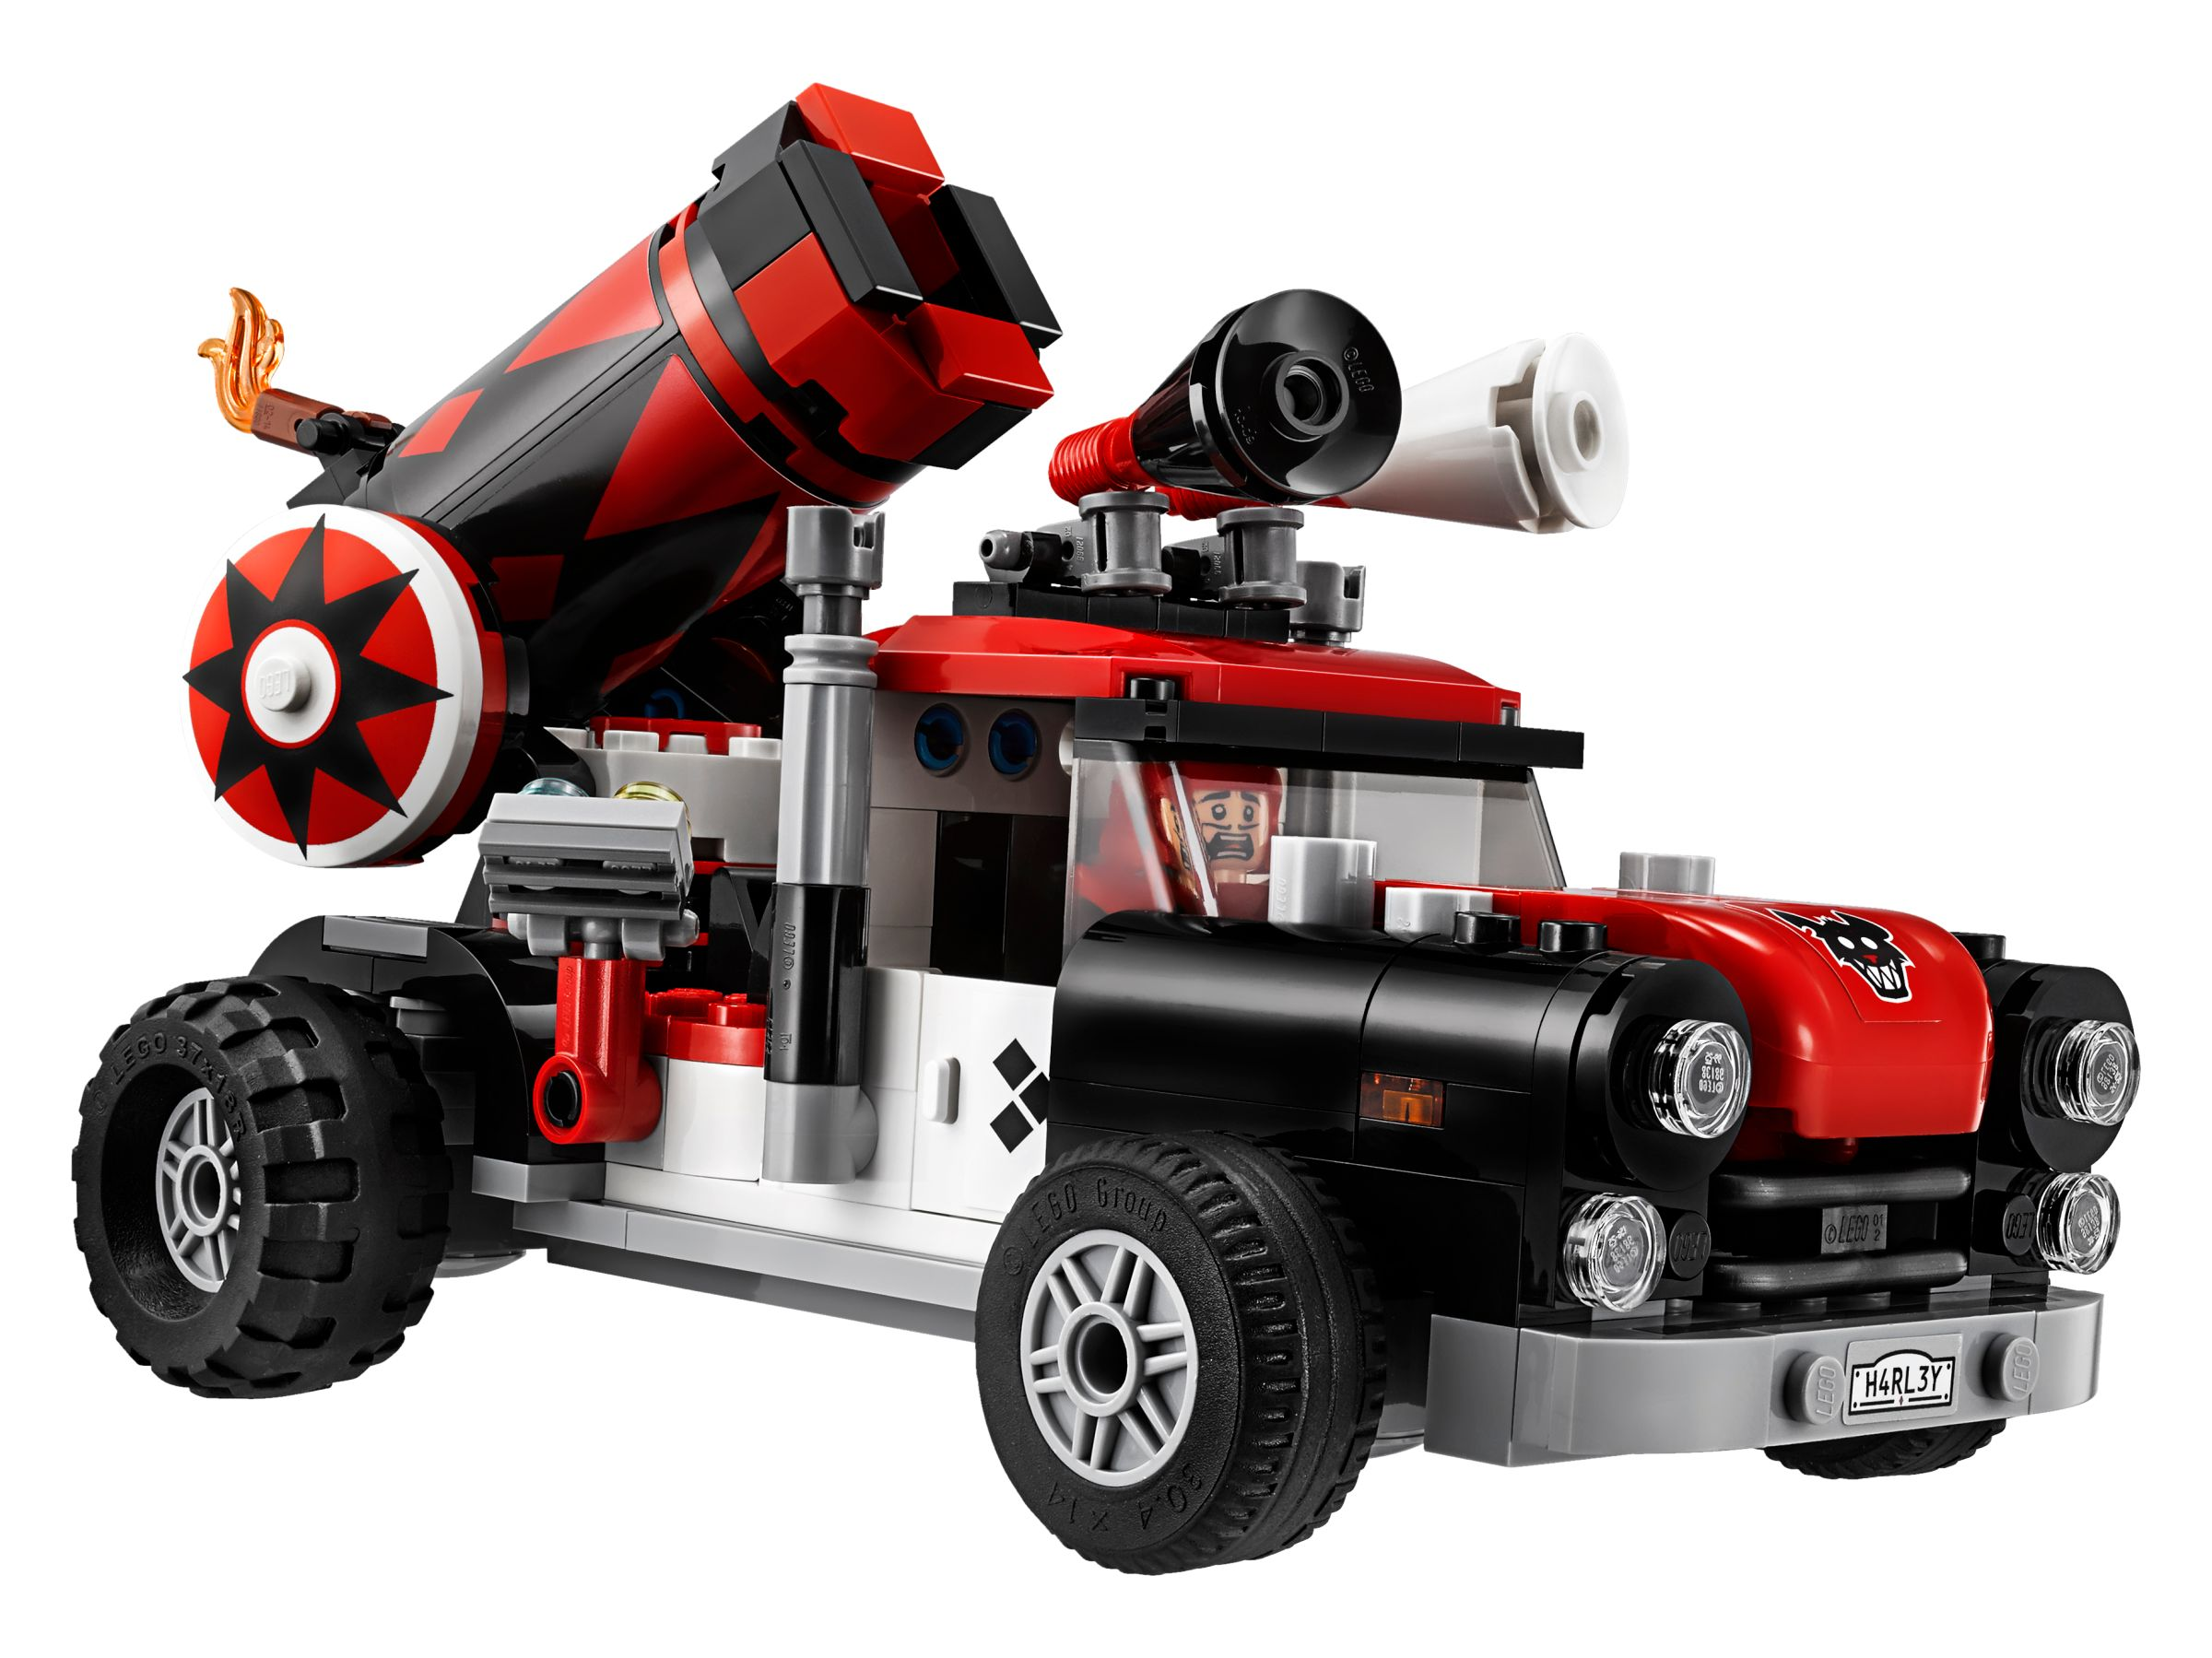 LEGO The LEGO Batman Movie 70921 Harley Quinn Kanonenkugelattacke LEGO_70921_alt3.jpg